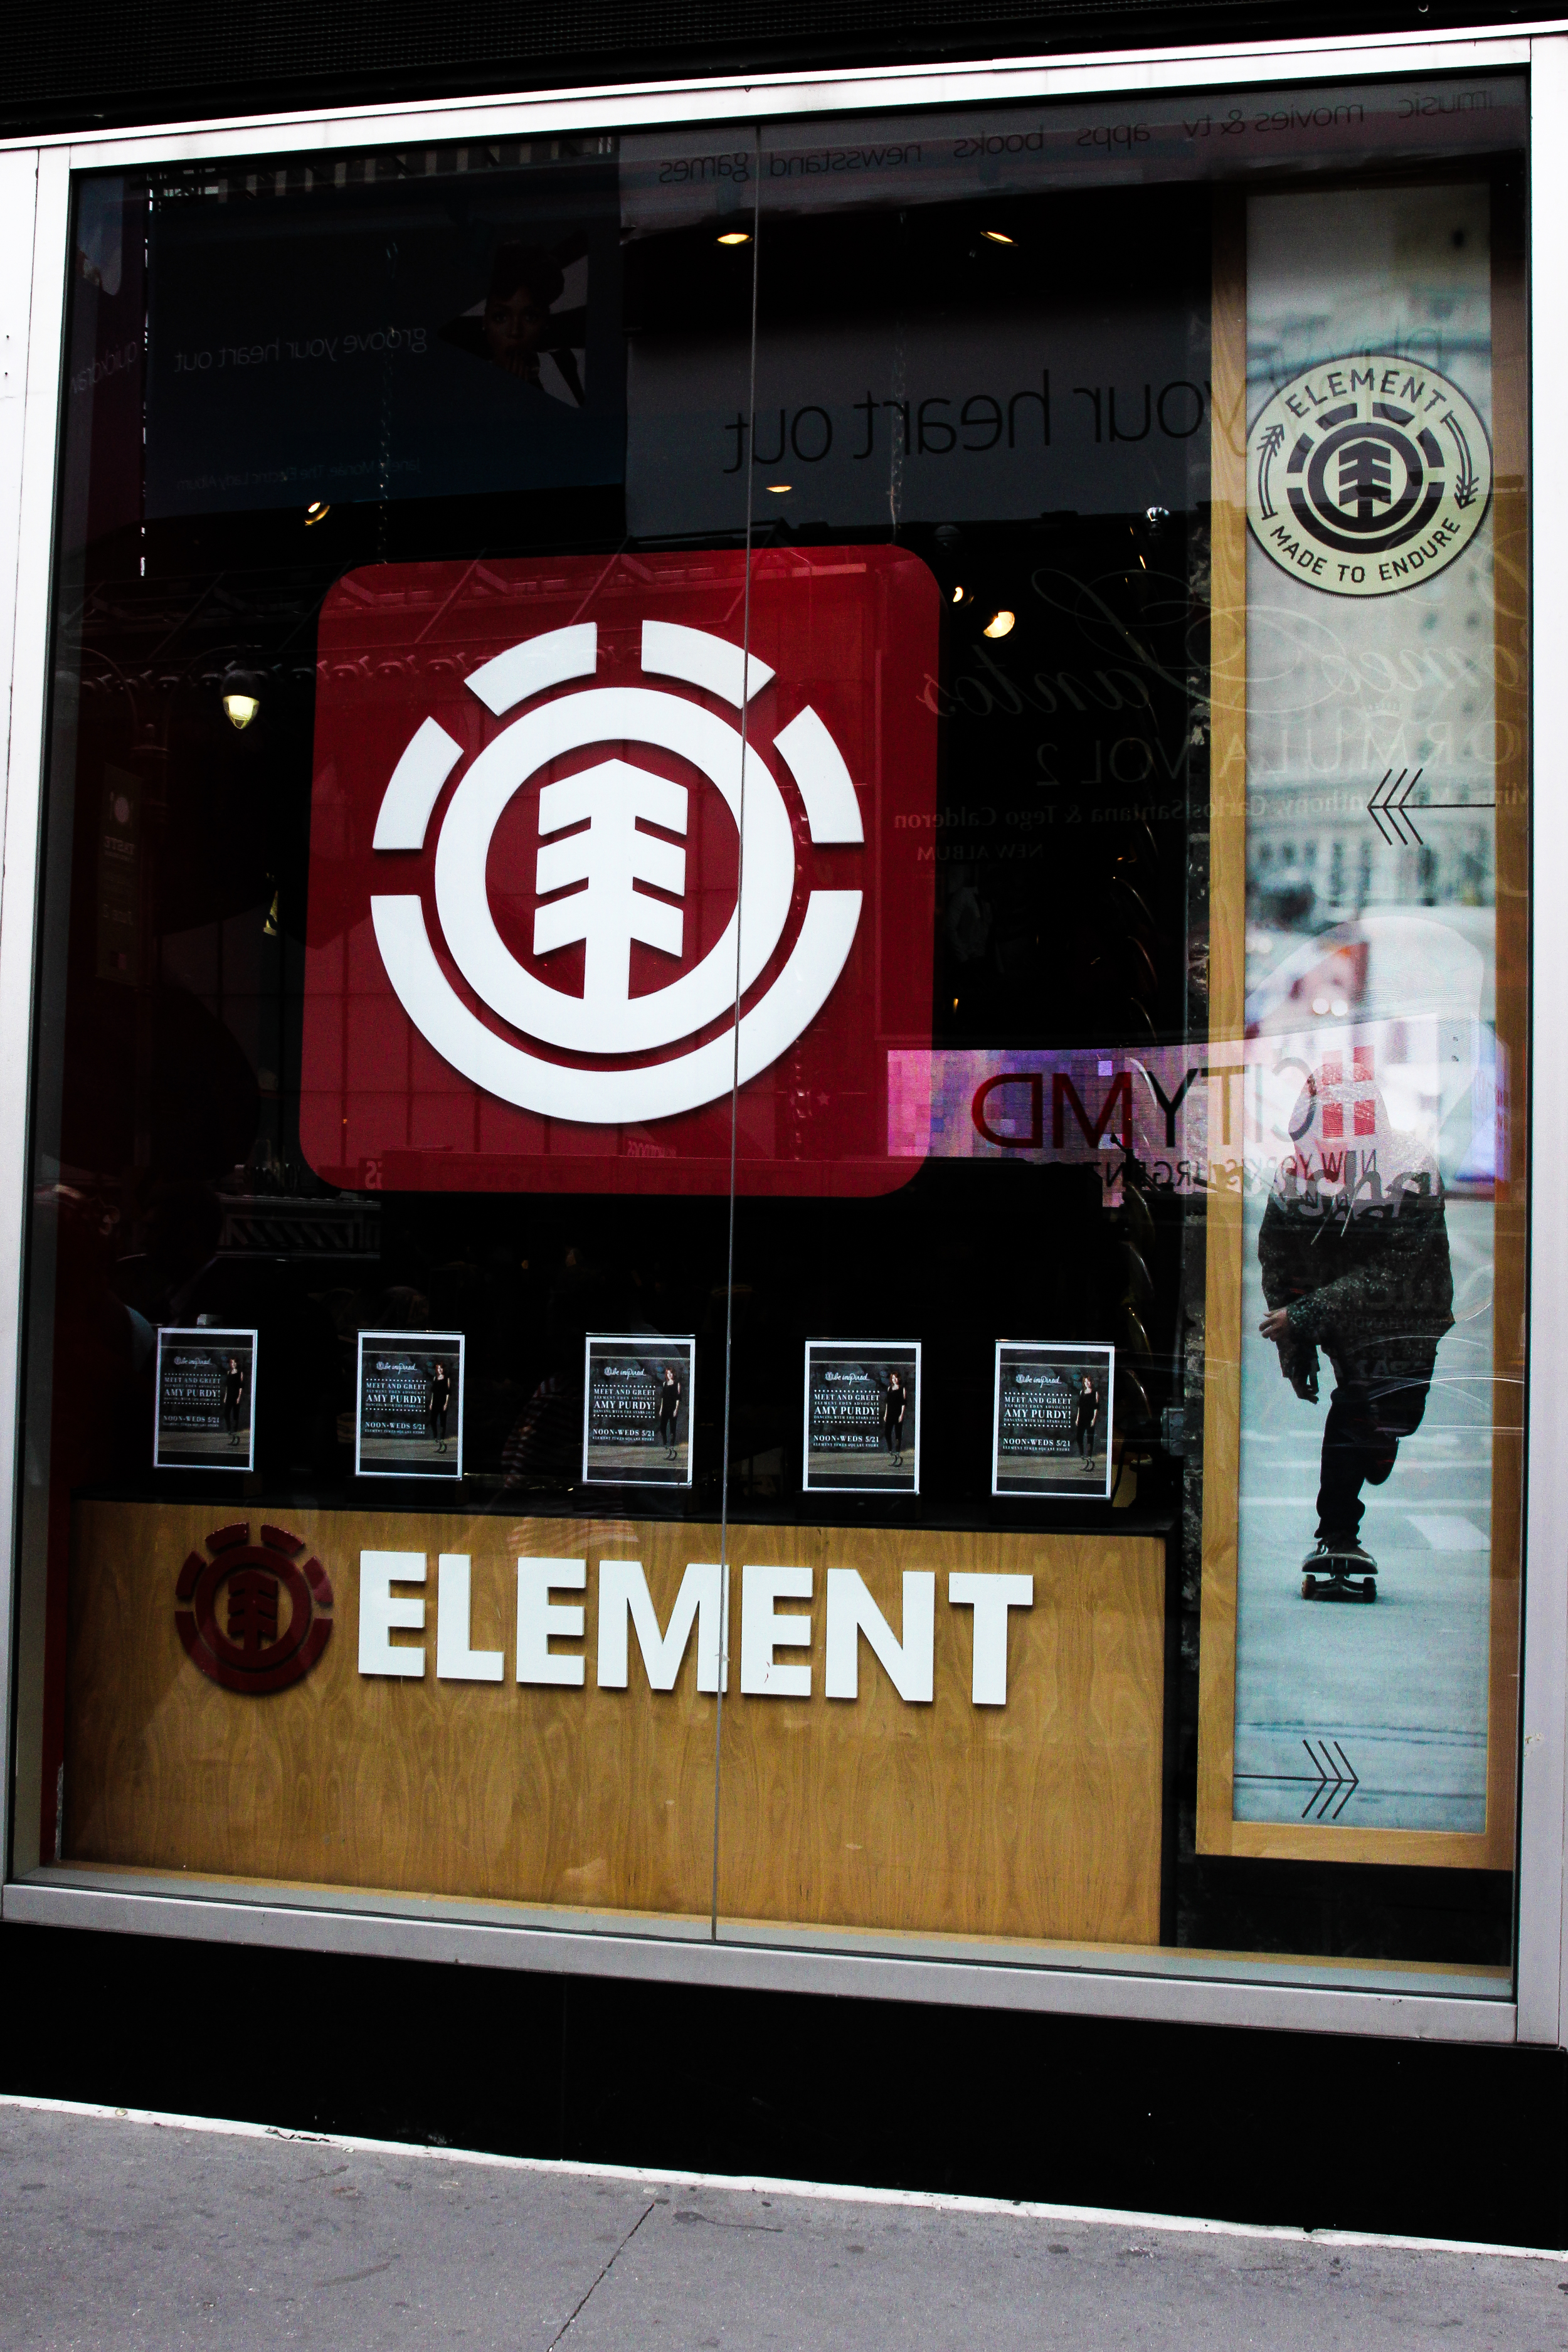 A store I had longed to see for quite a while: the Element store in Time Square.